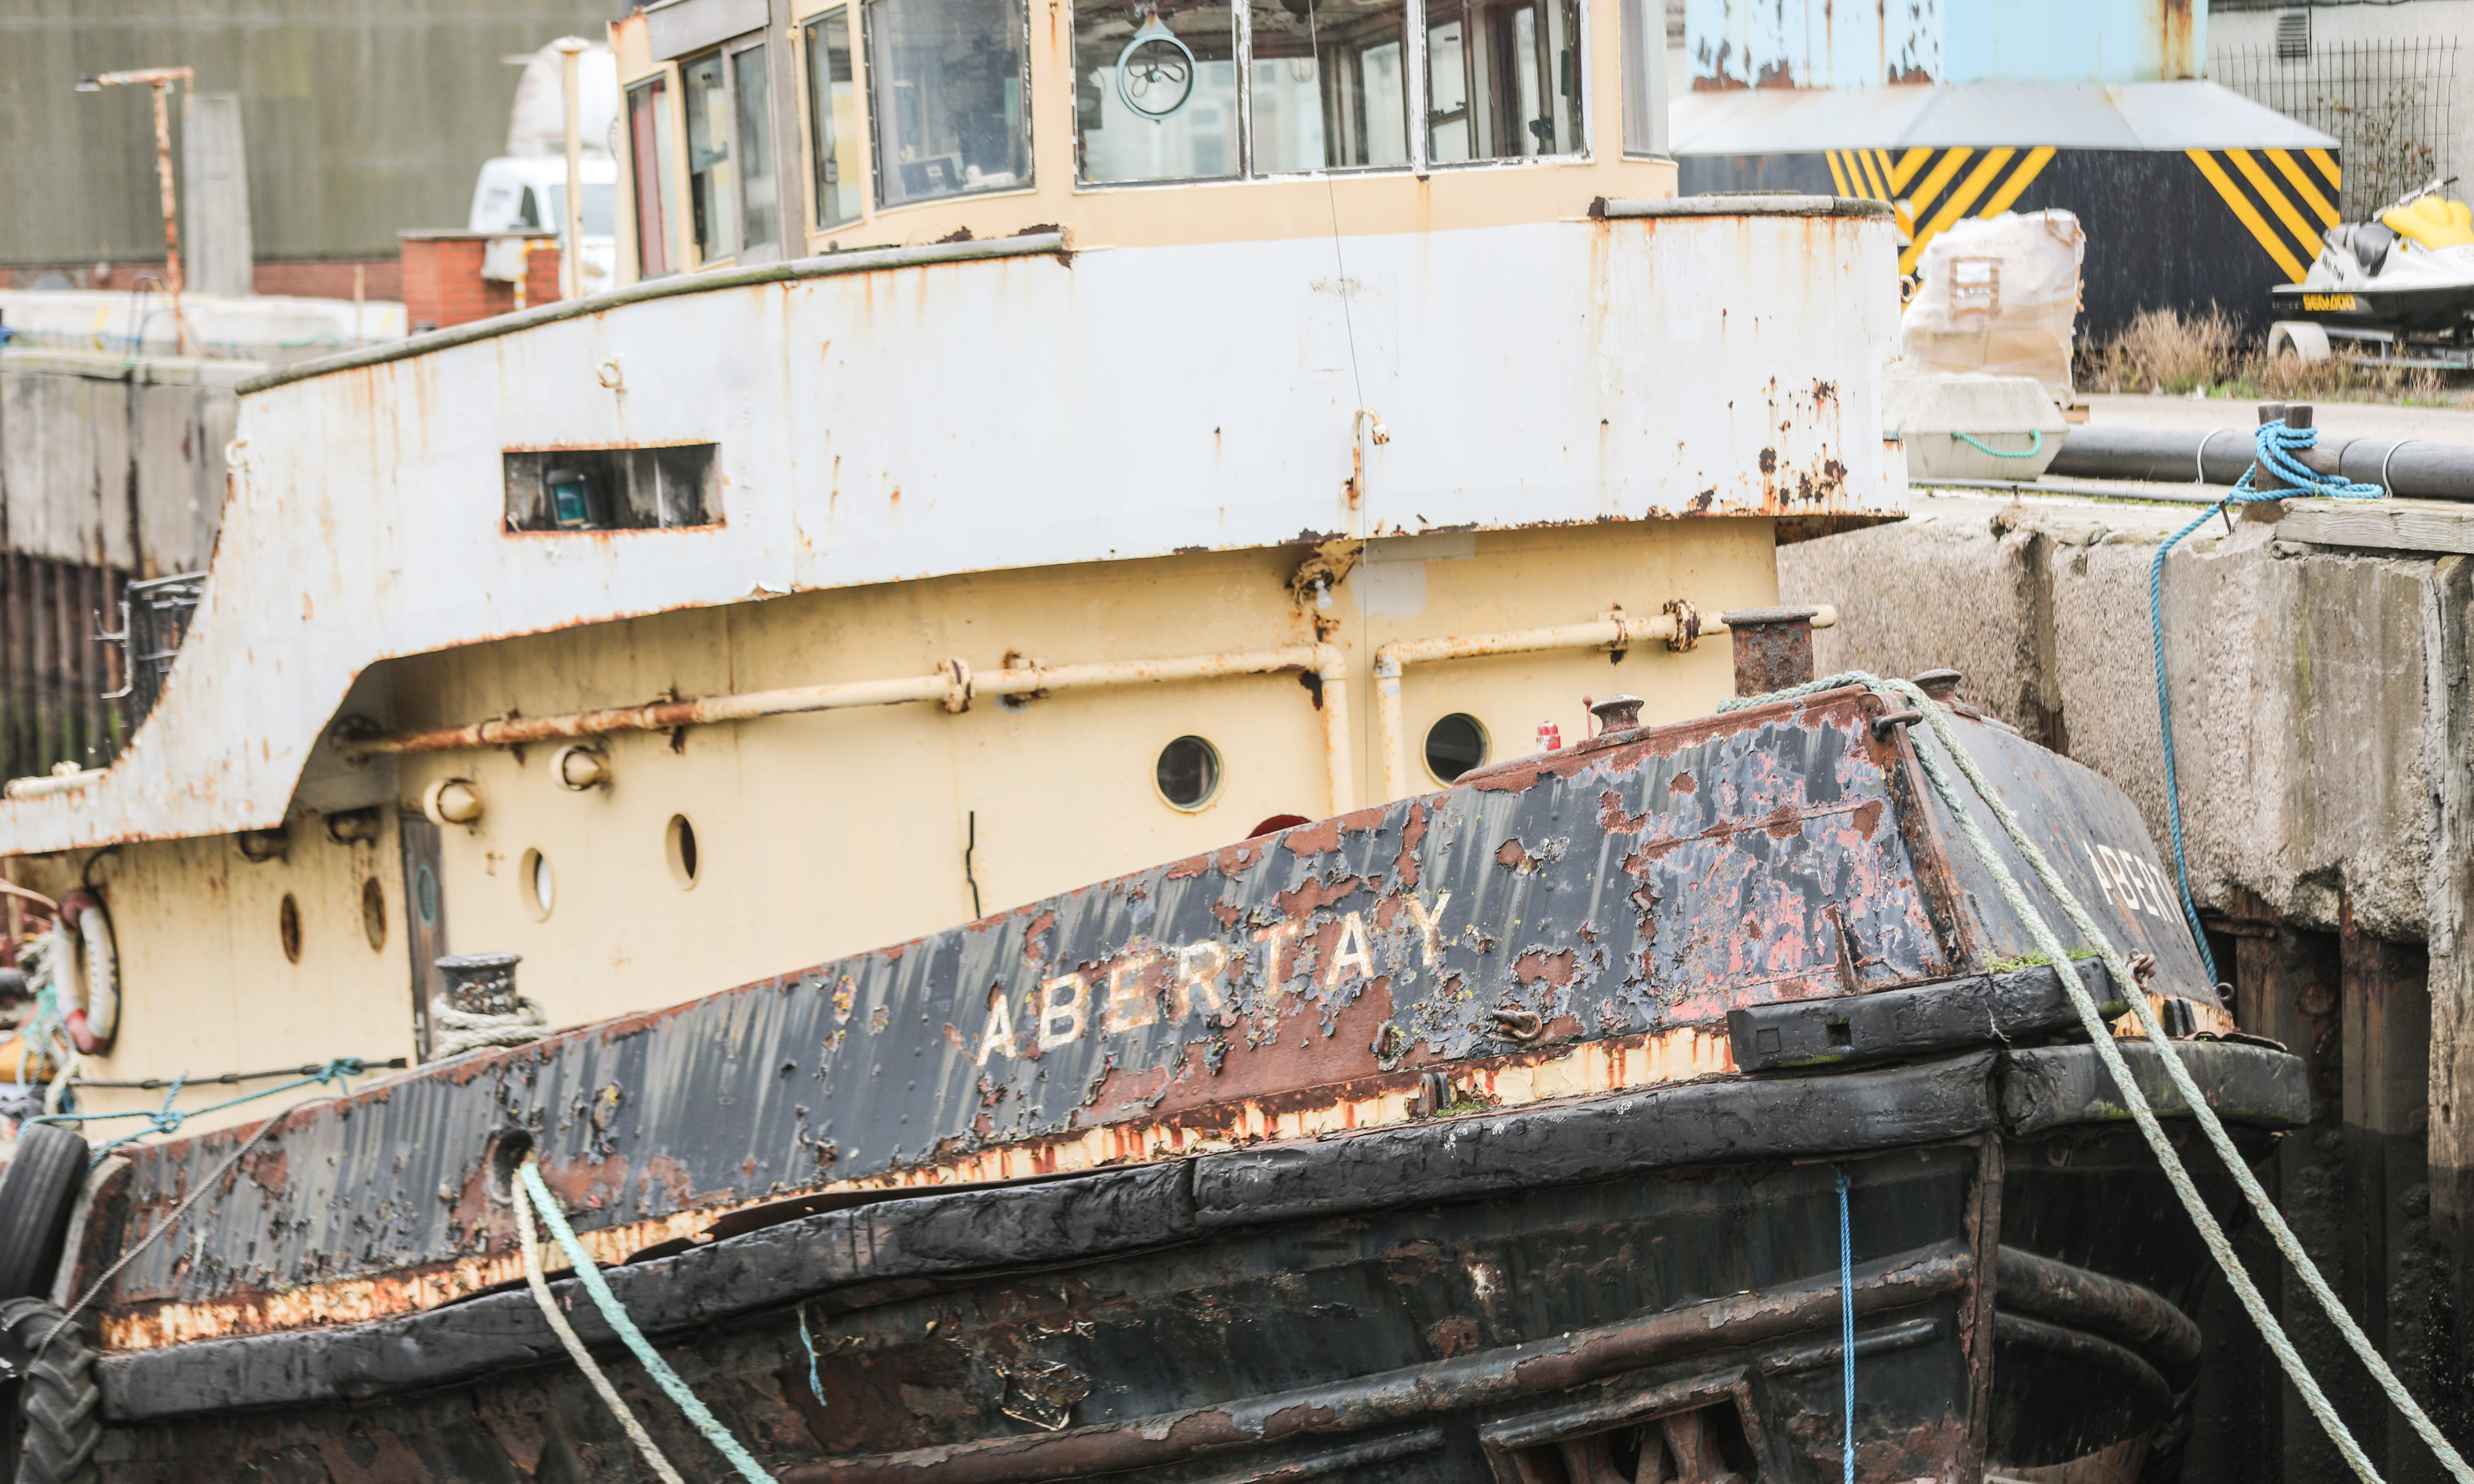 The tug boat Abertay which is been restored by a group of volunteers